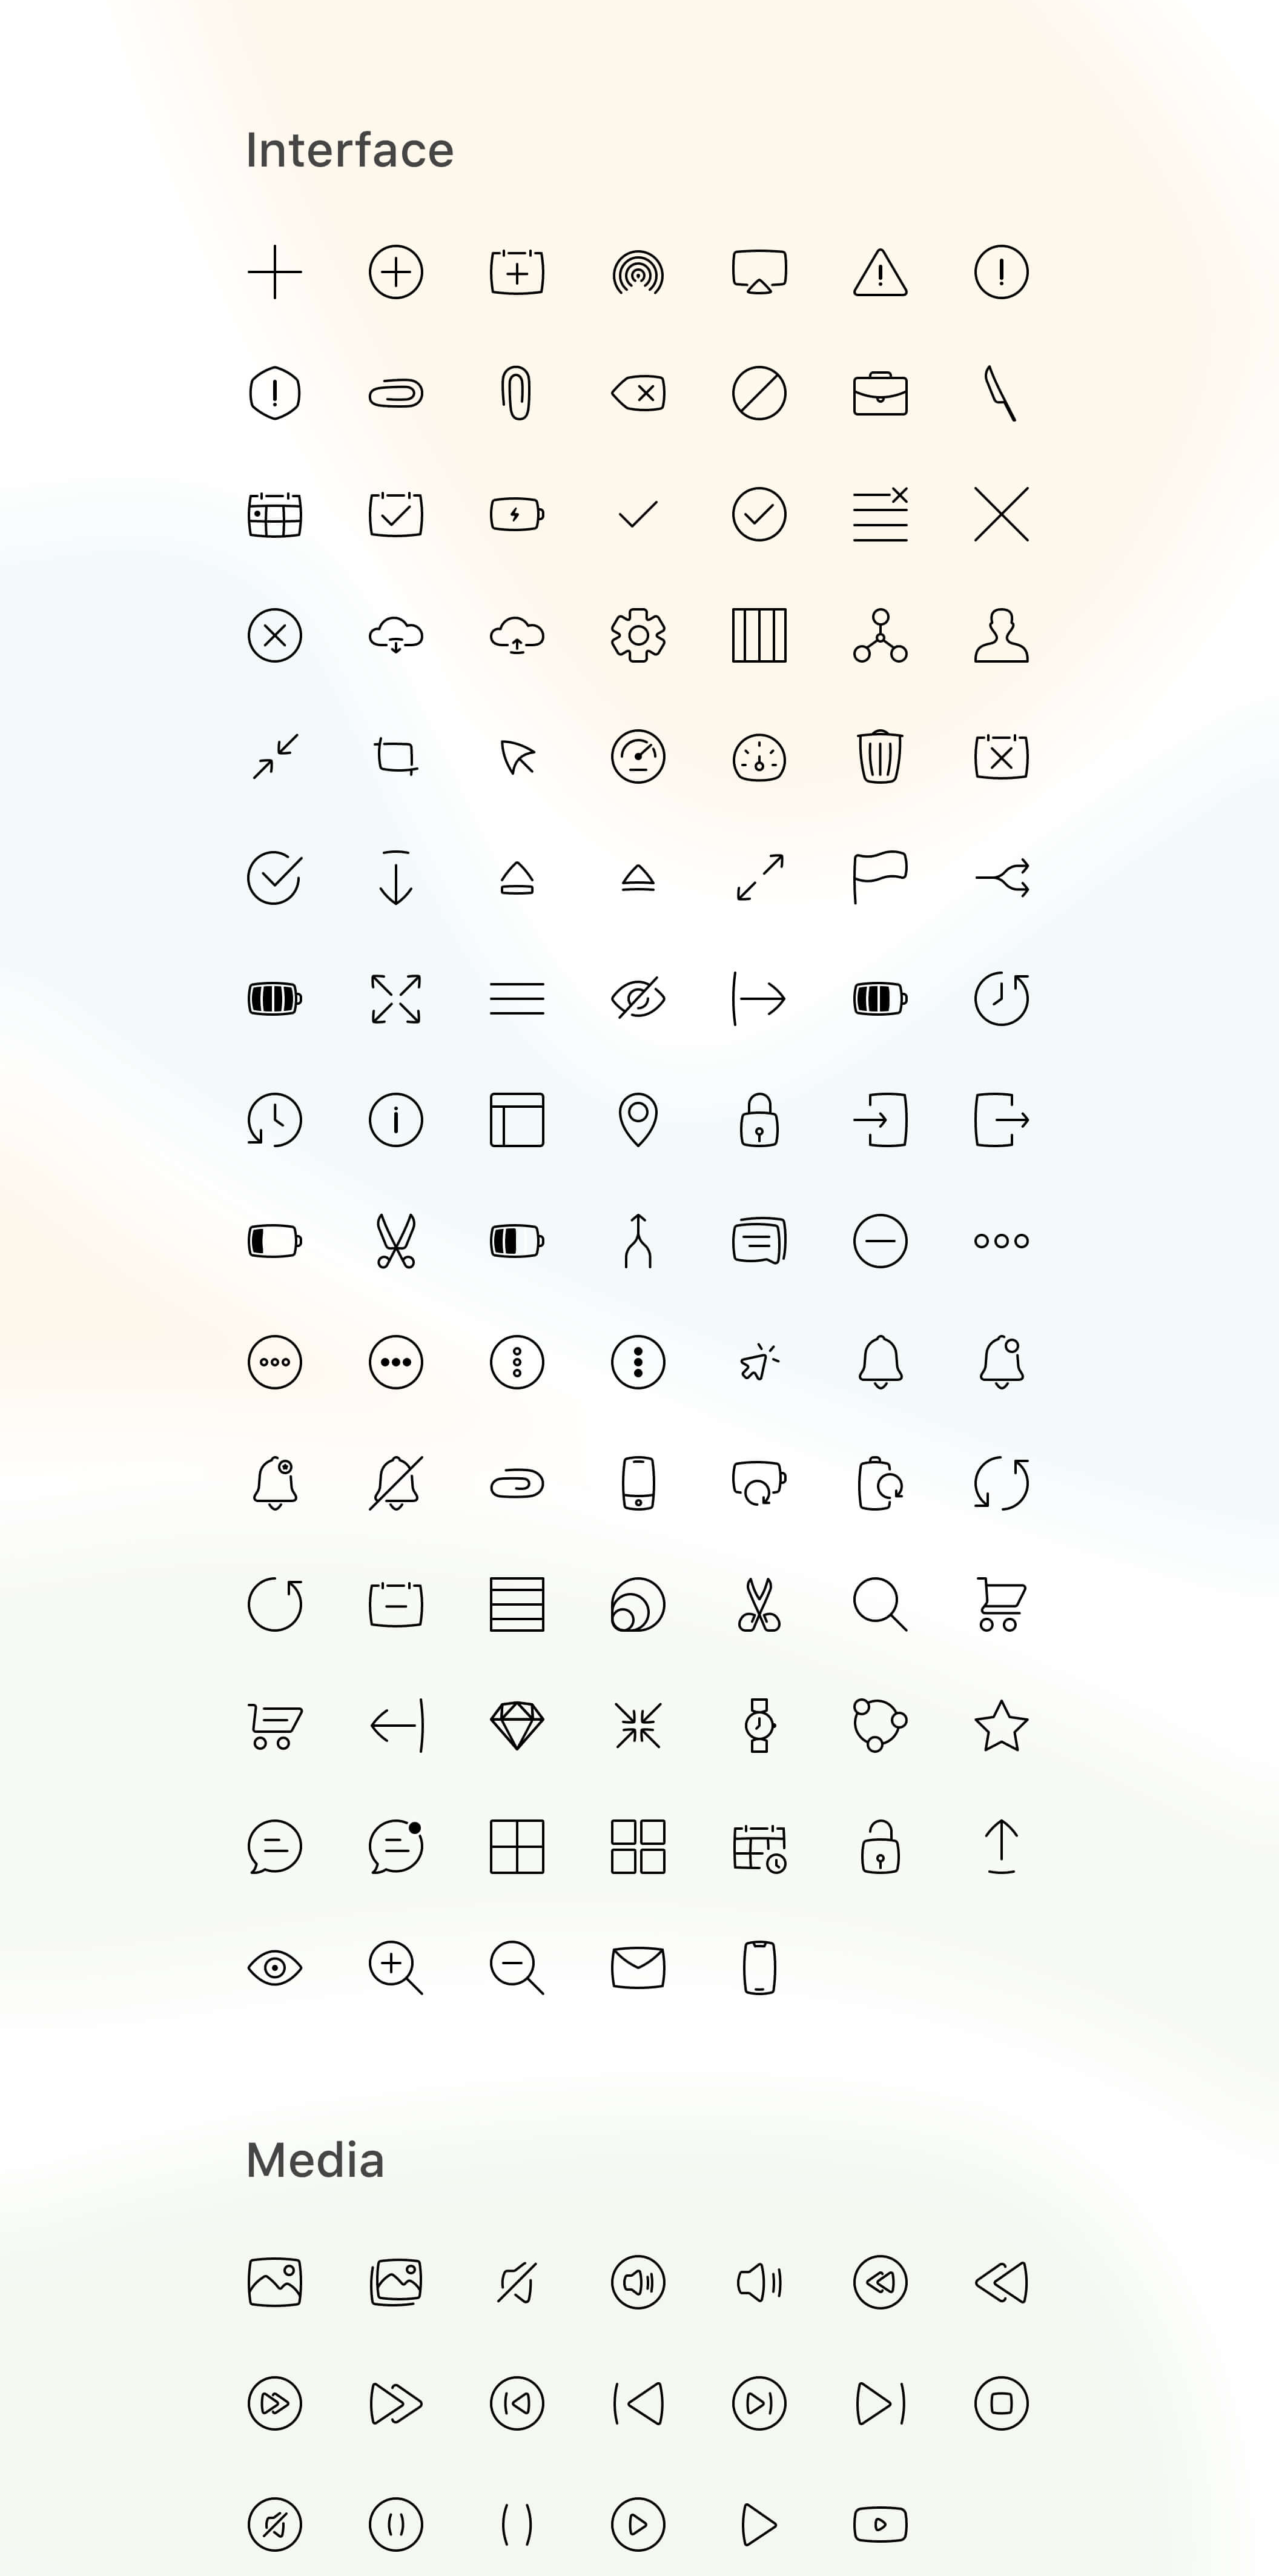 Blobby Icons Set – 343 интерфейсных, финансовых, медиа и VR иконок